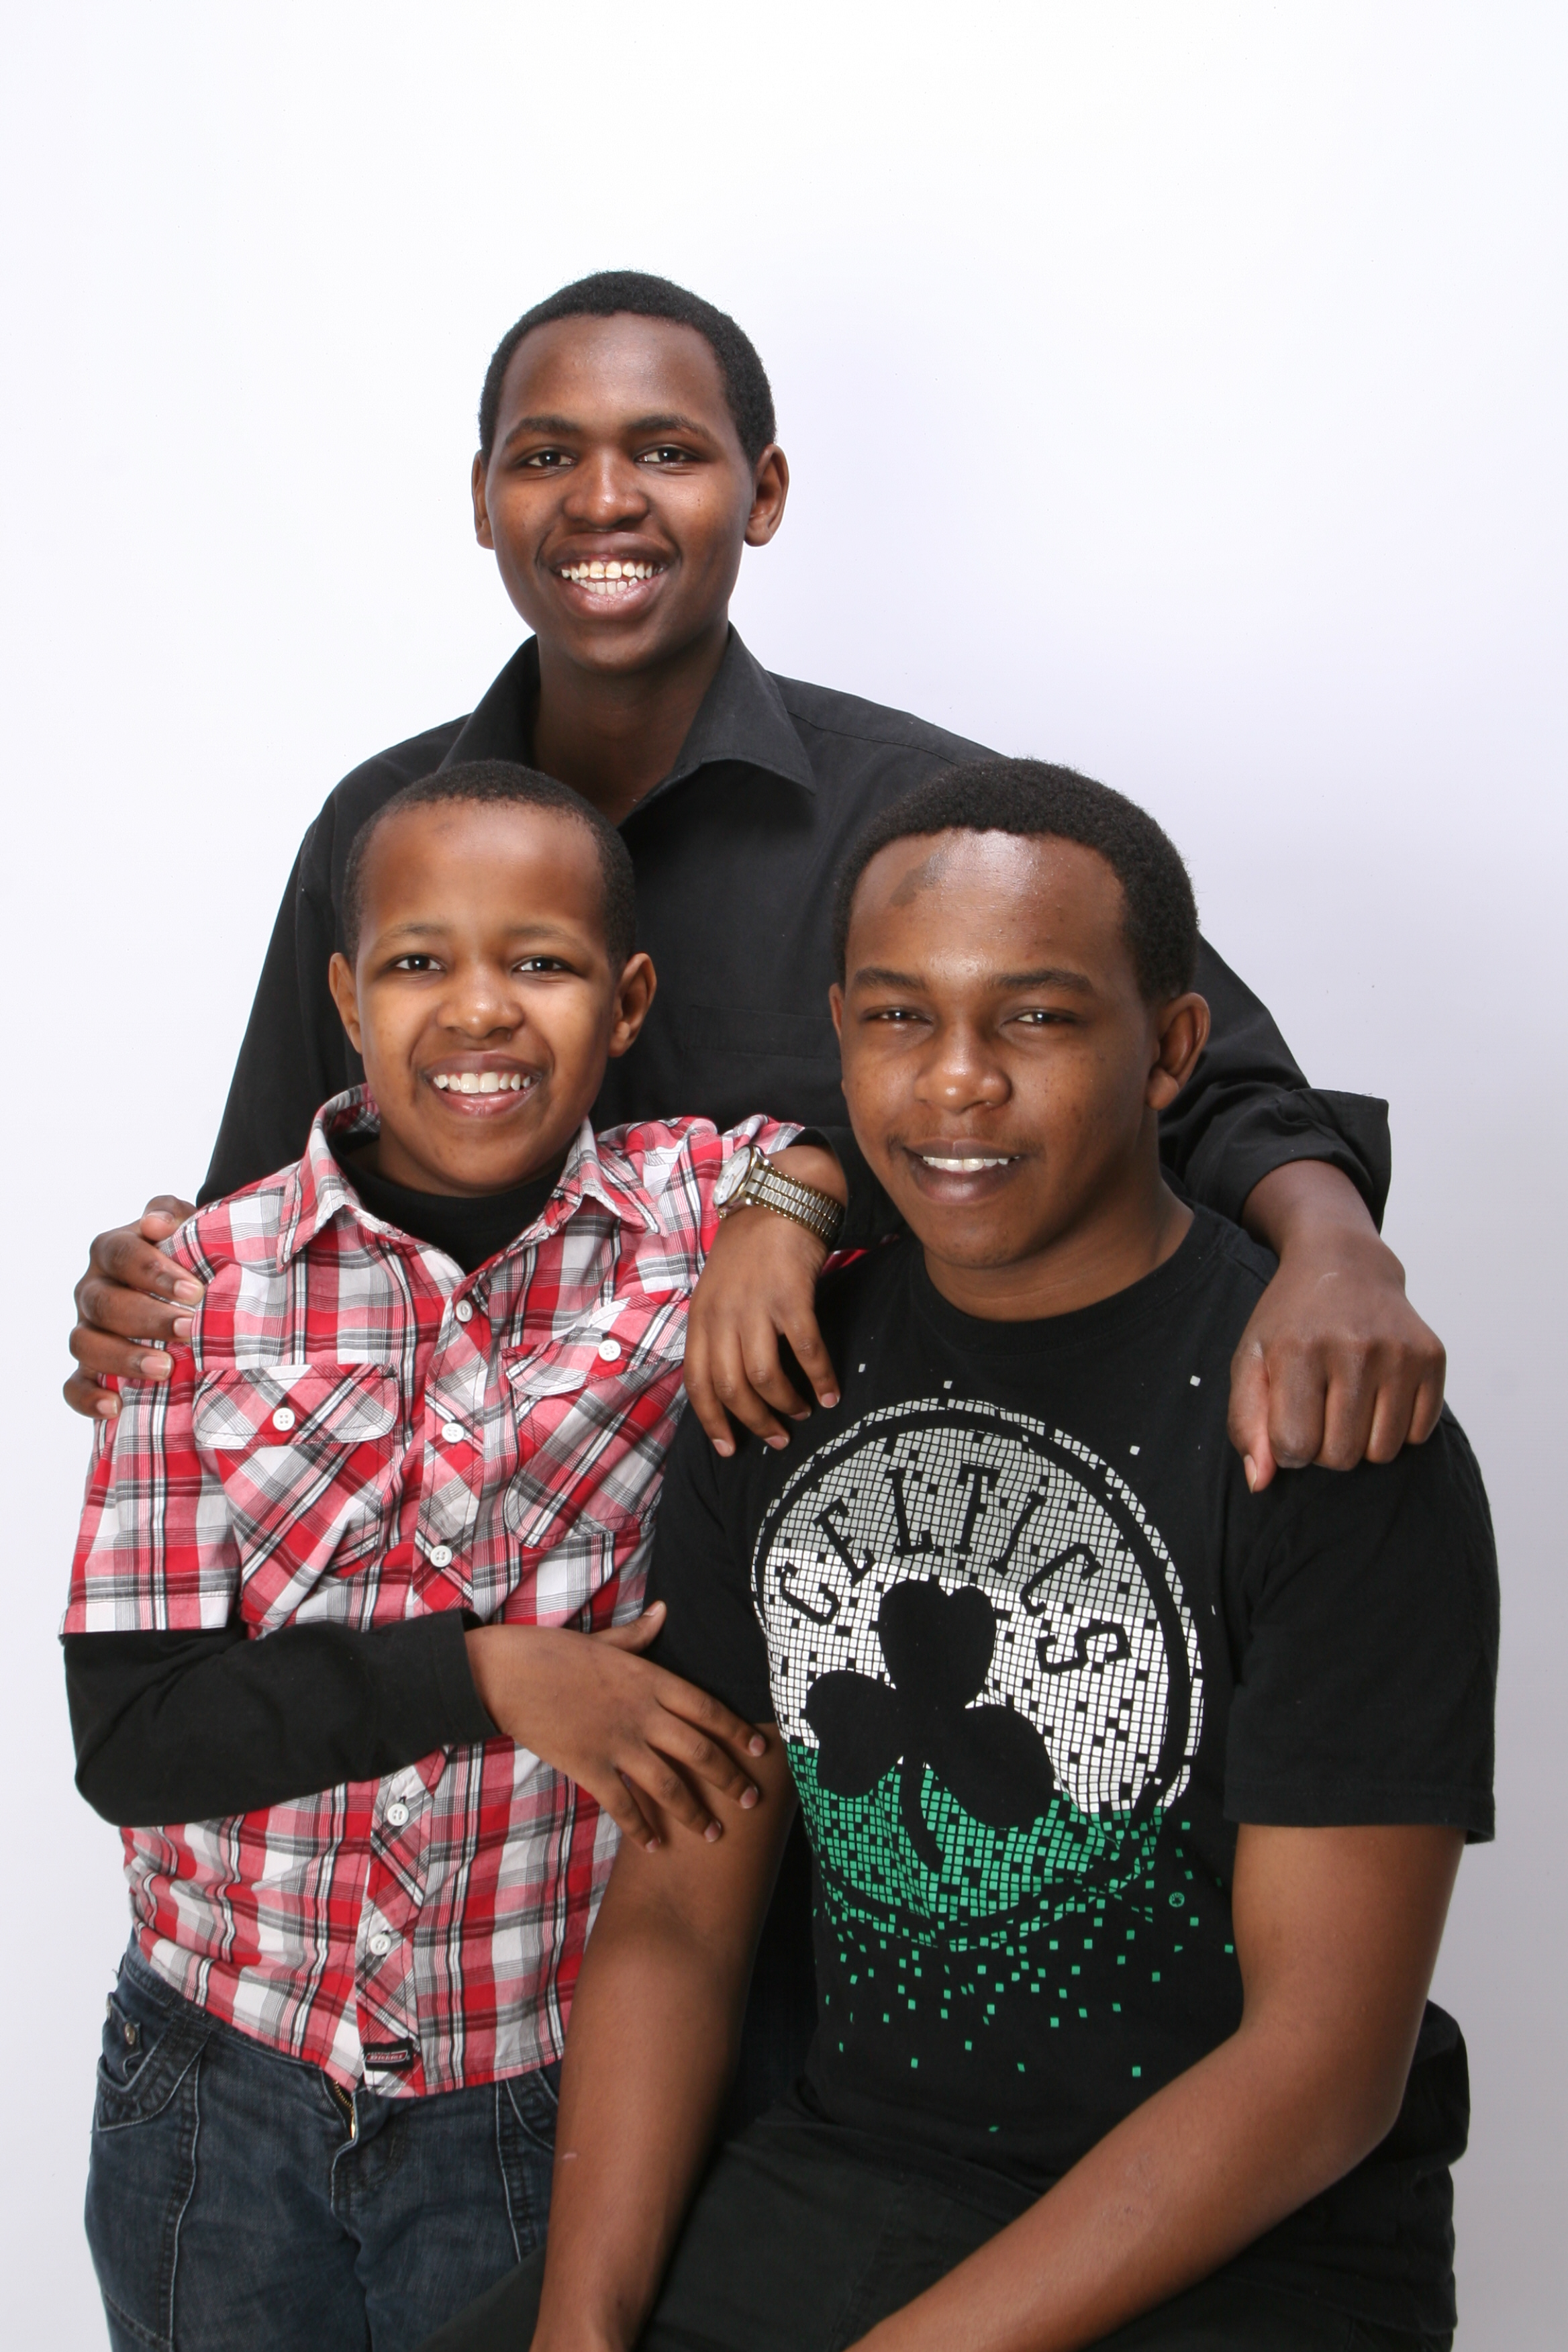 JOEMARK AND HIS BROTHERS JAMES (RIGHT) AND DANIEL (LEFT)